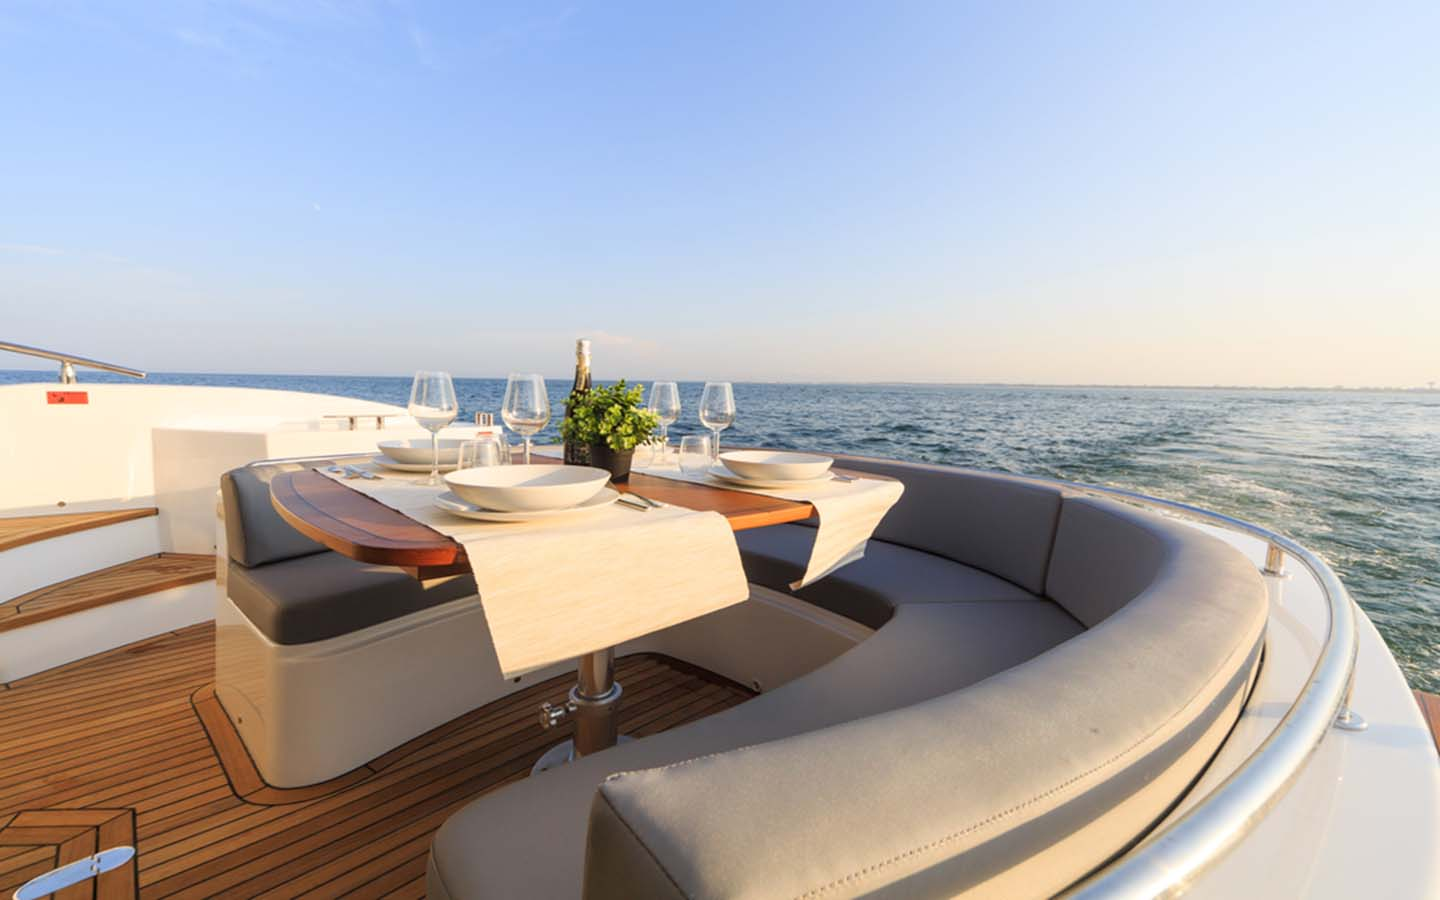 outdoor sitting area in yacht